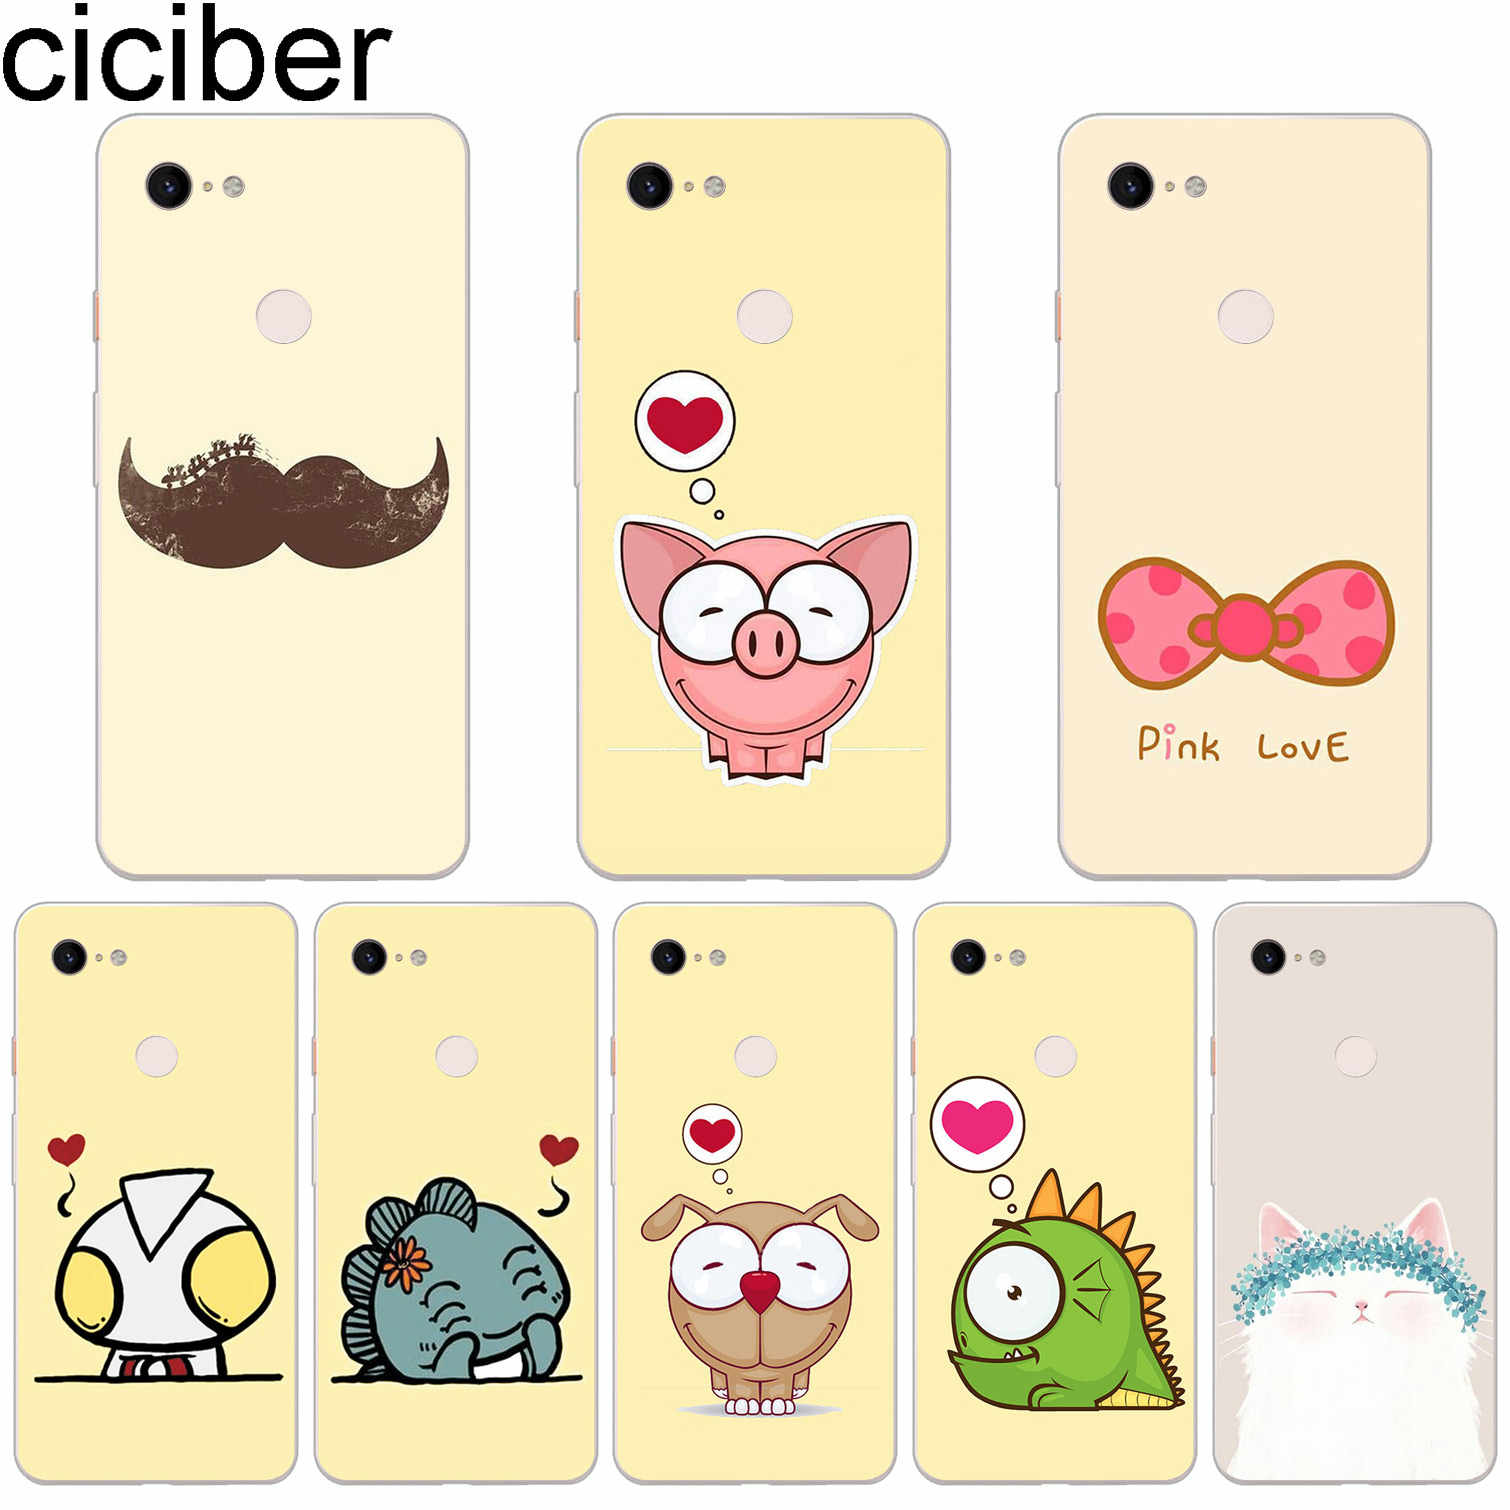 ciciber Cartoon Love Soft Silicone Phone Case For Google Pixel 3 2 XL TPU Back Cover for Pixel 3XL 2XL Coque Fundas Capa Shell